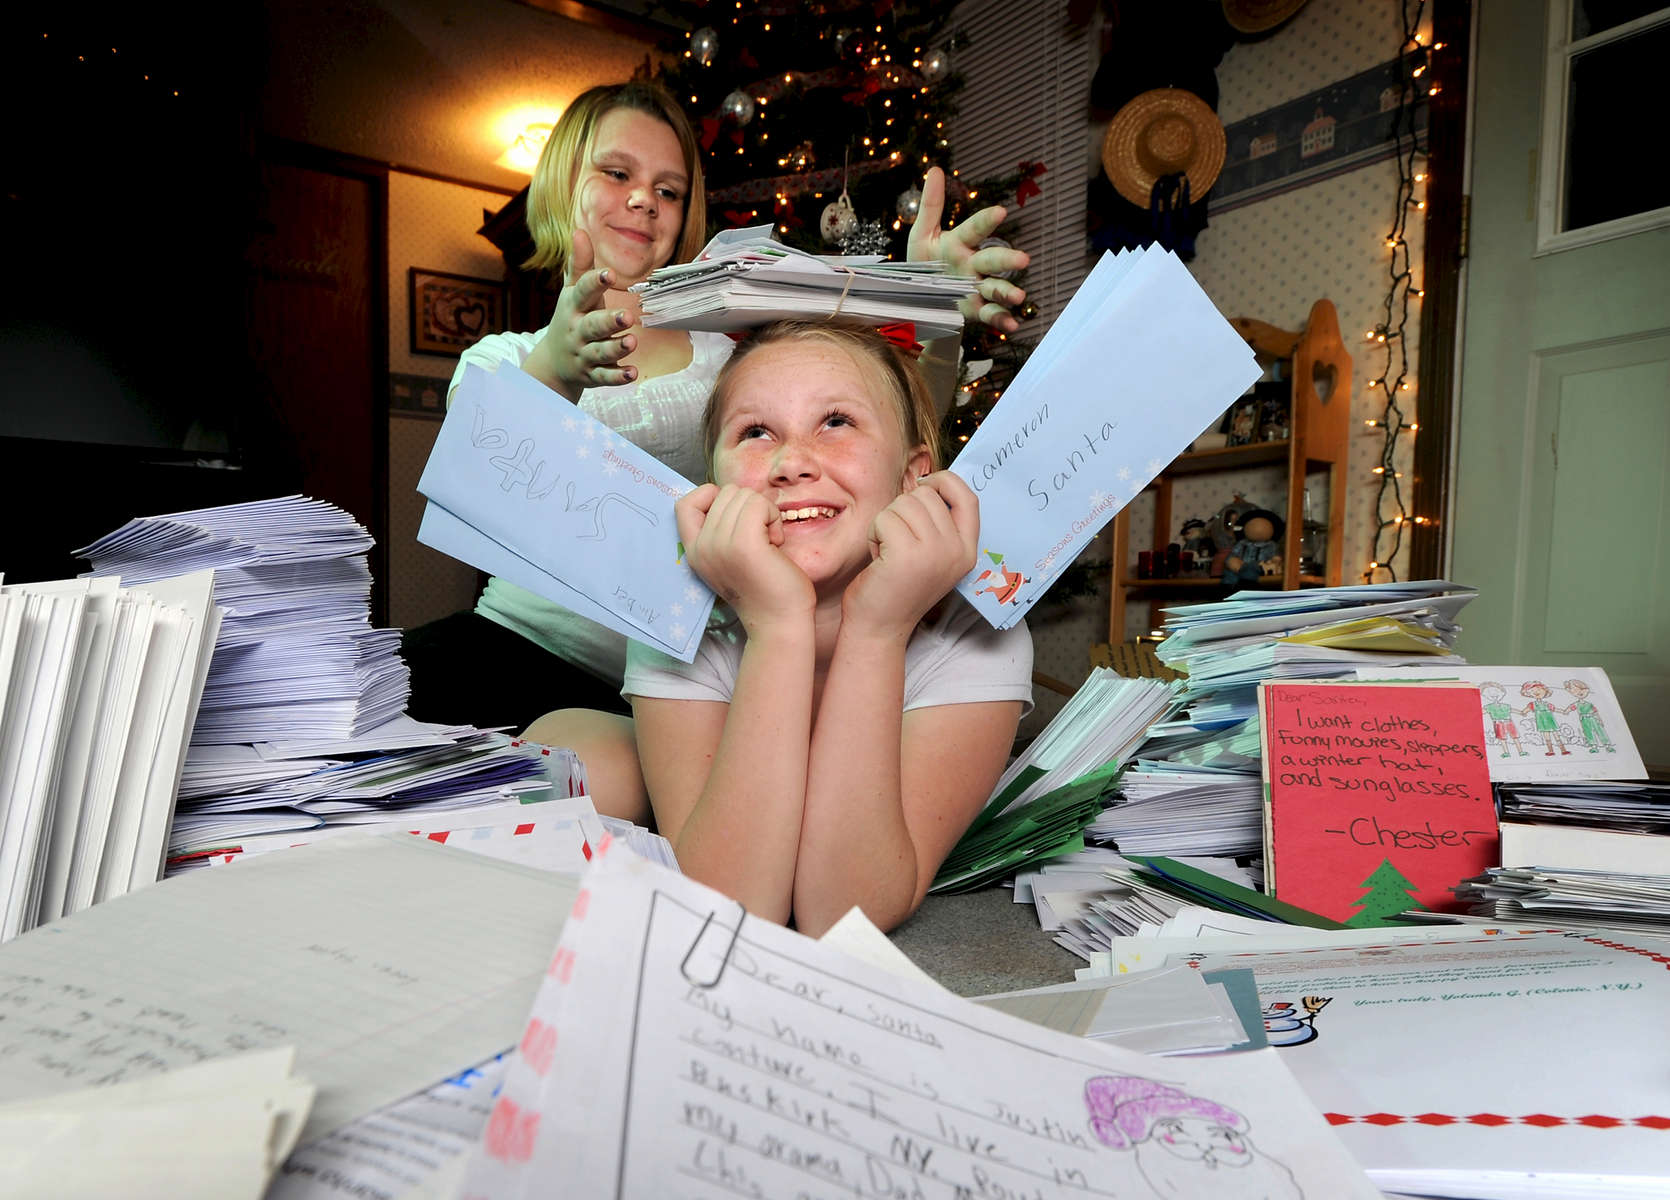 Jason McKibben - jmckibben@poststar.comJustice White Sloan, 10, front, and her sister, Bethany, 13, pose Tuesday, November 30, 2010, with some of the thousands of letters to Santa Claus they have received this year. The letters will be given to Macy\'s which has pledged to donate a dollar for every letter, up to 1 million, to the Make-A-Wish Foundation. This is the second year Justice, who has a genetic disorder that causes liver and lung problems, spearheaded a letter campaign. Last year she collected 10,000 letters.